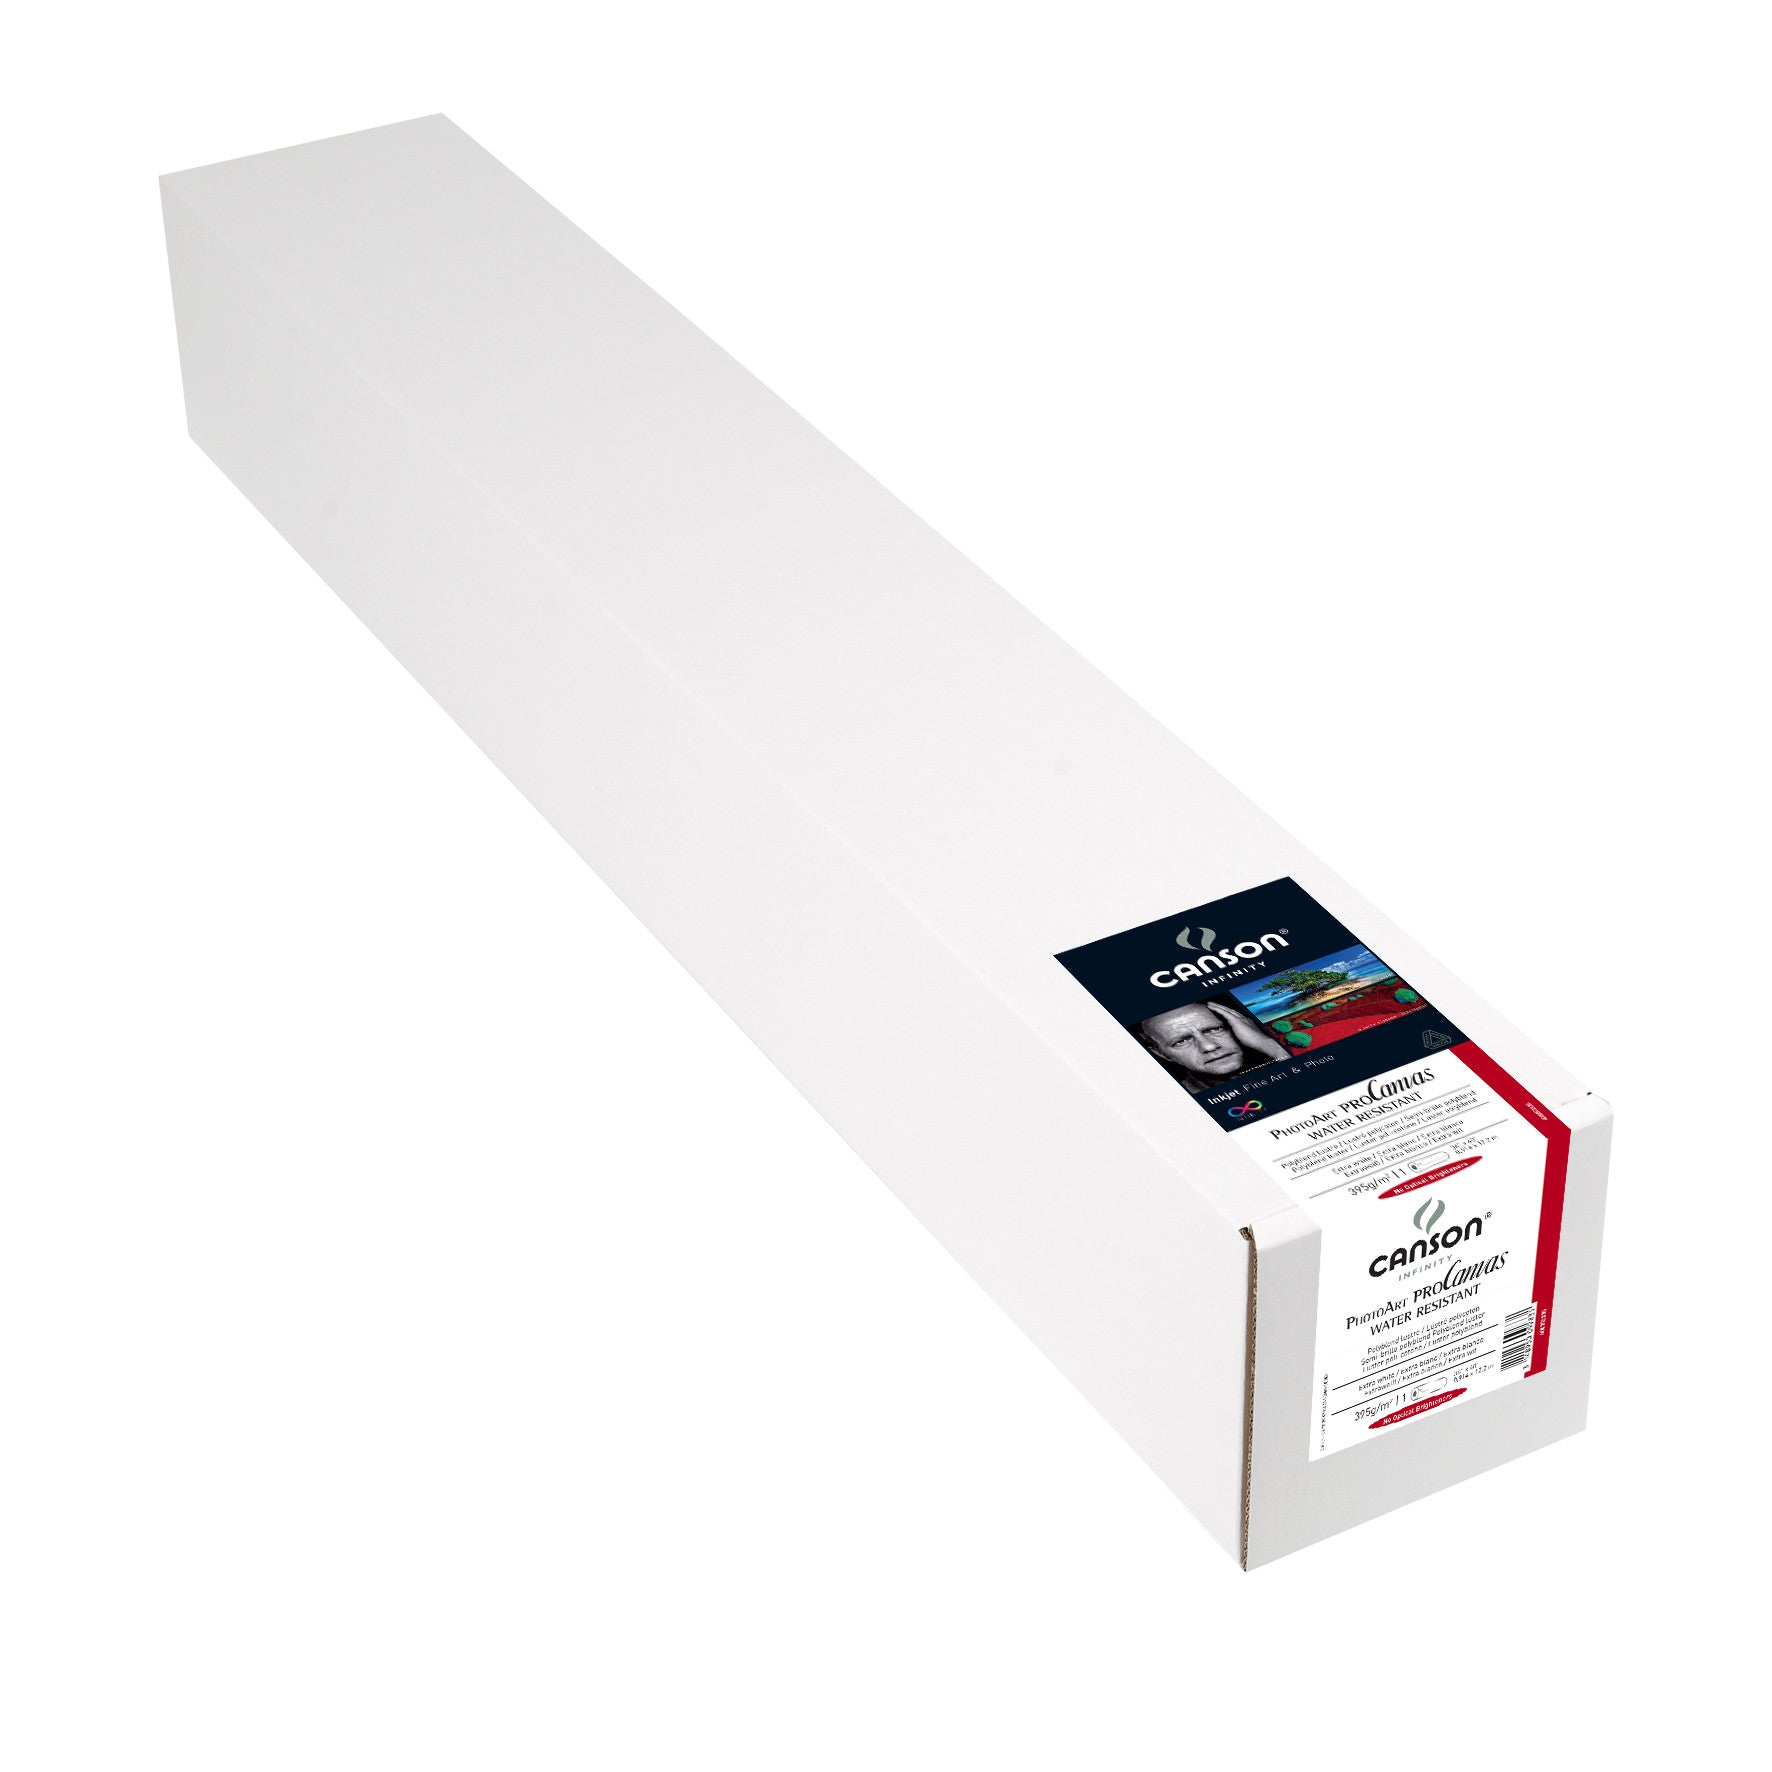 "Canson Infinity PhotoArt Pro Canvas WR Luster - 395gsm - 36""x40' roll"